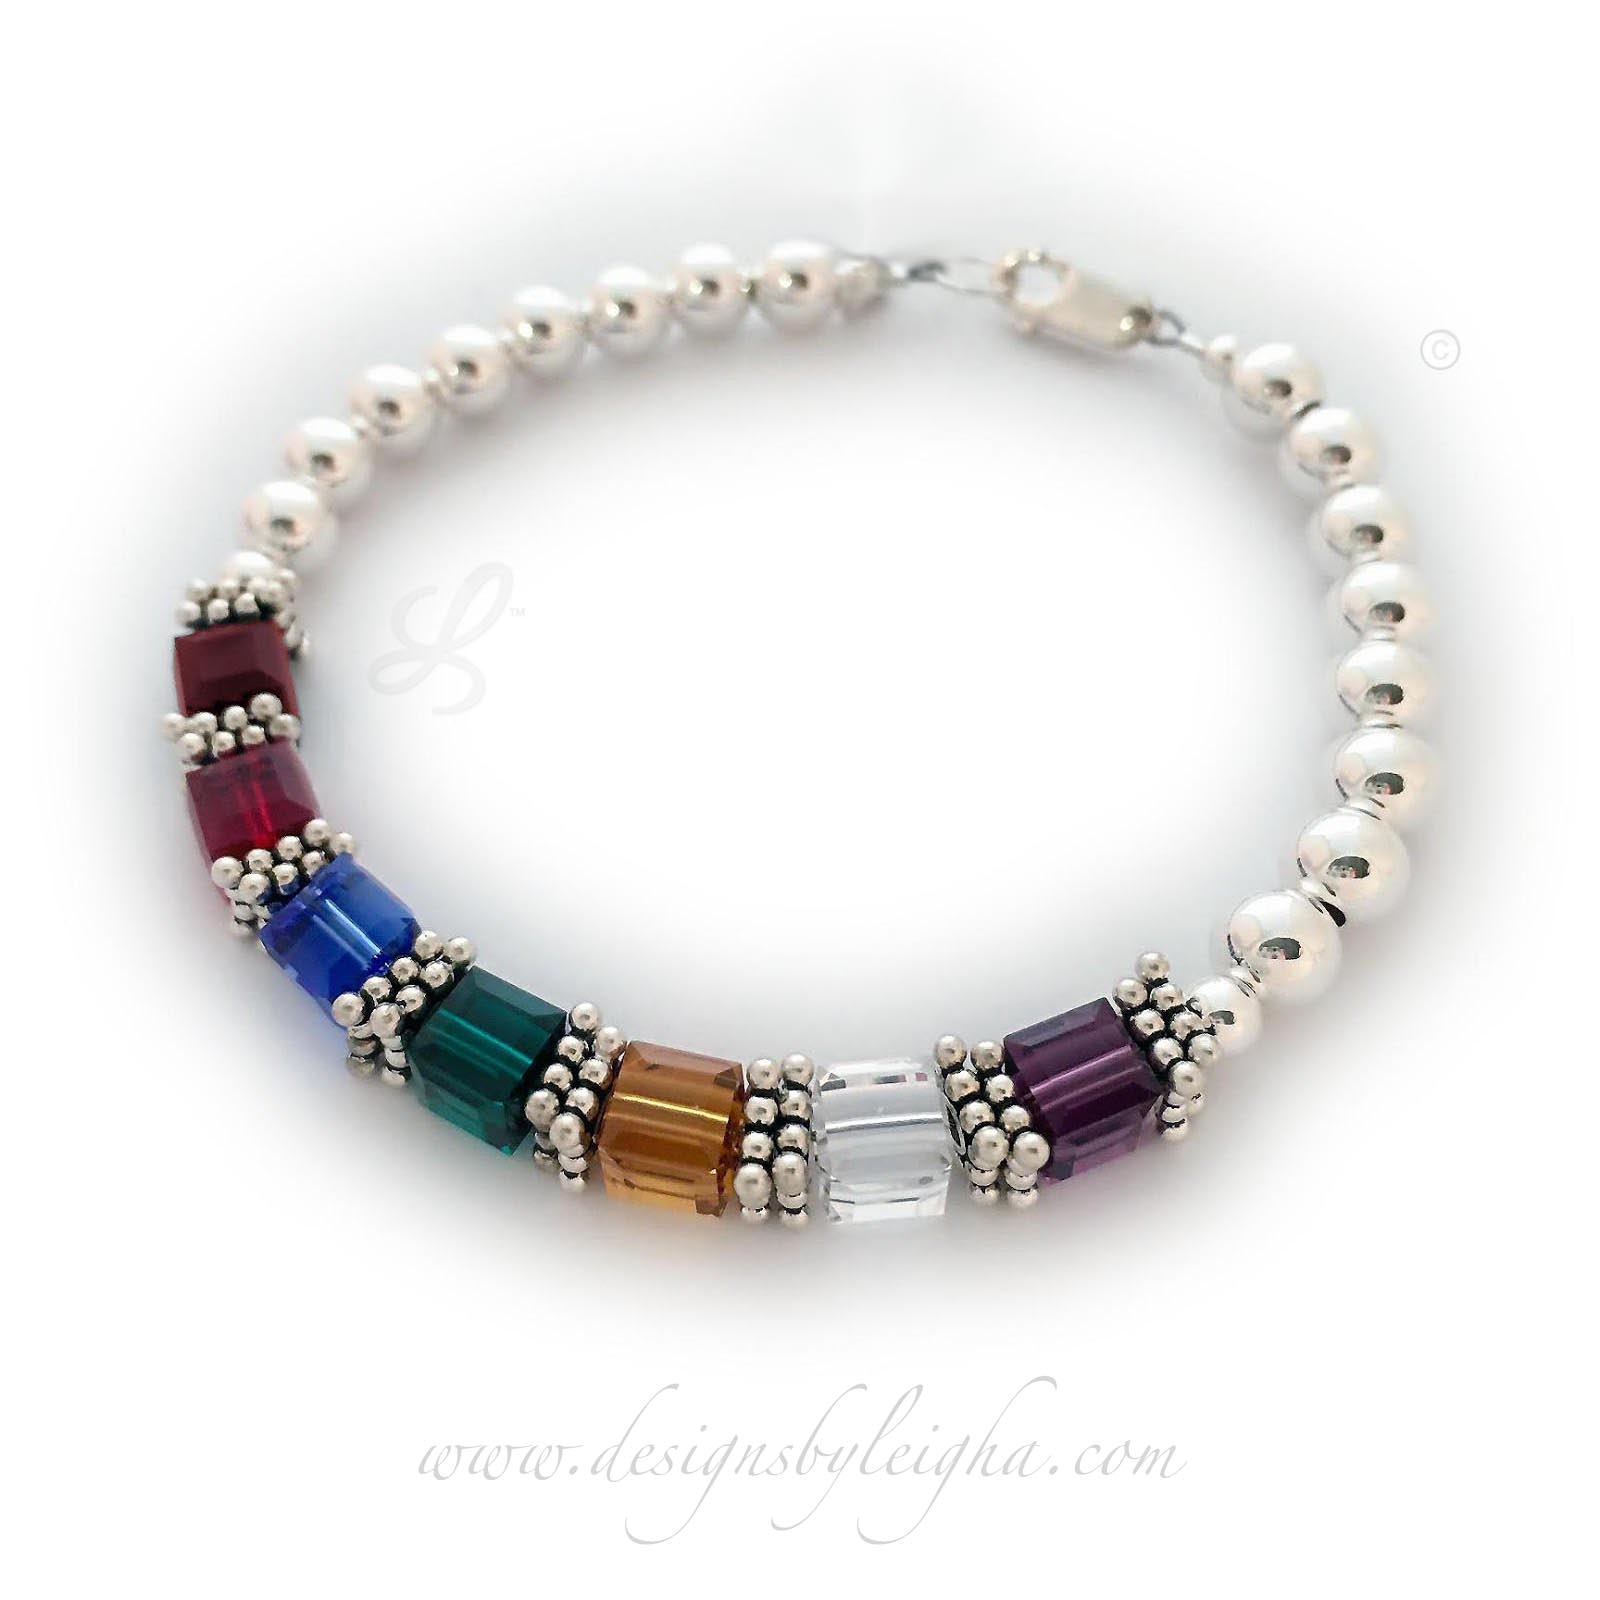 DBL-BB-Sal3  Shown with 7 birthstones and an add-on Fancy Cross Charm. January, July, September, May, November, April and February Birthstones are shown on this bracelet.